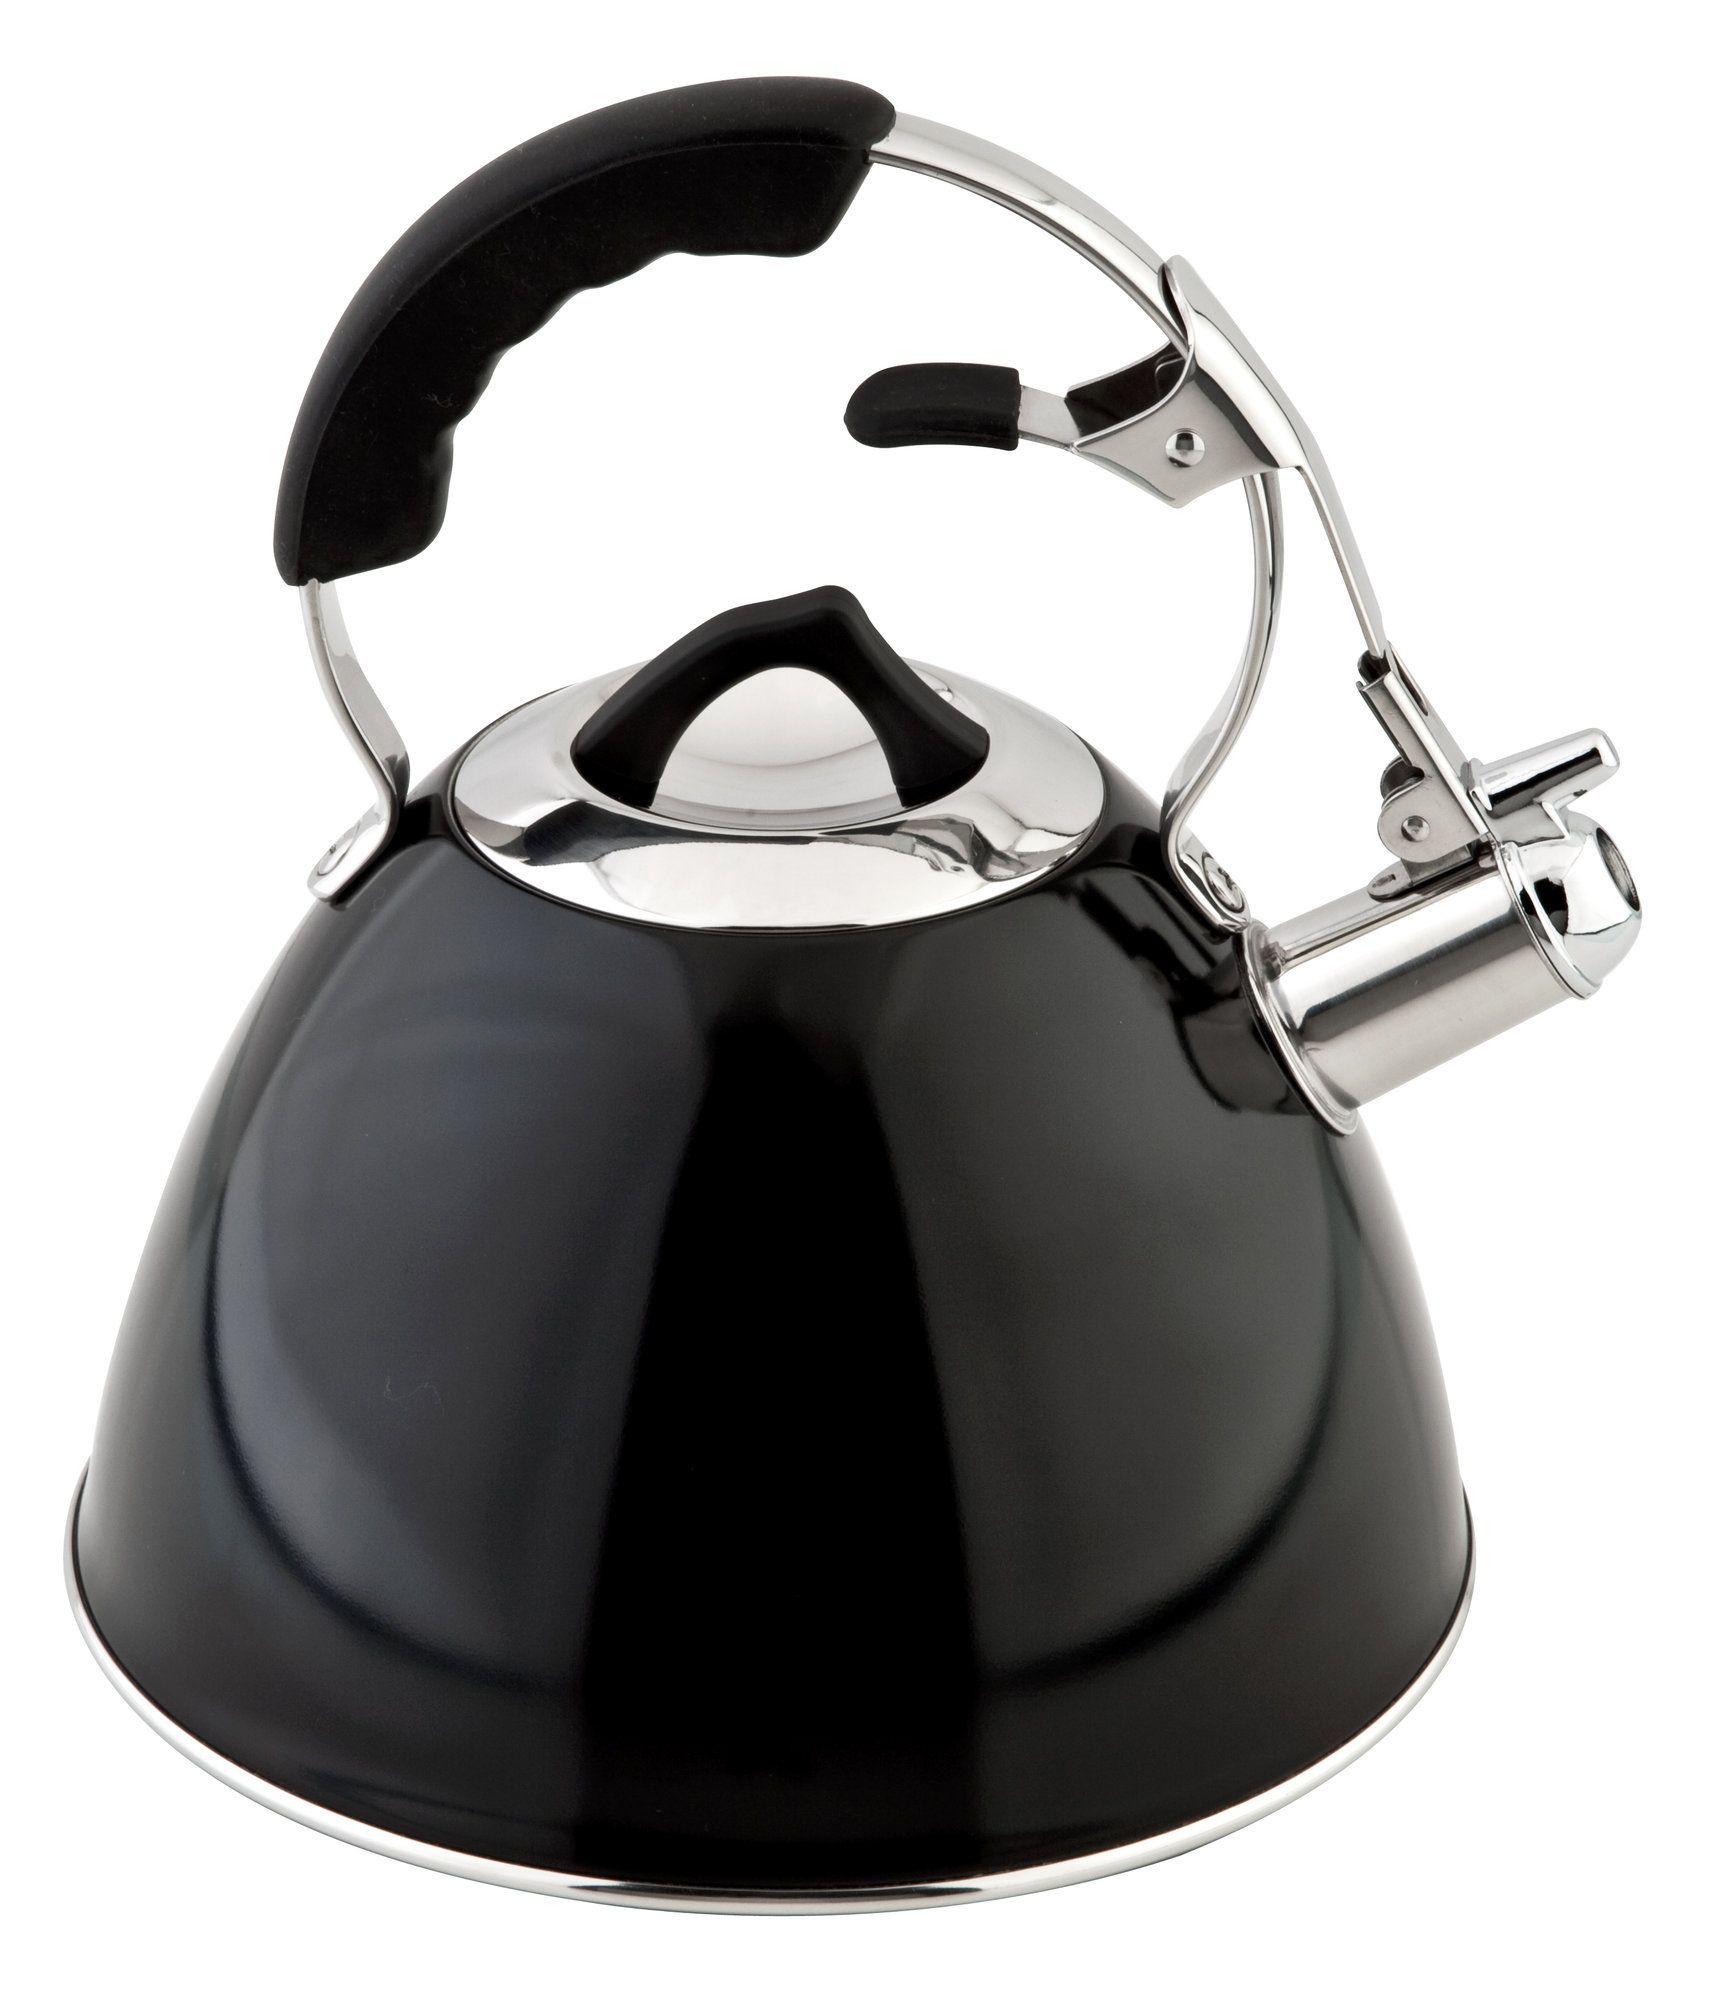 aquatic 3 17 qt stainless steel whistling stove tea kettle